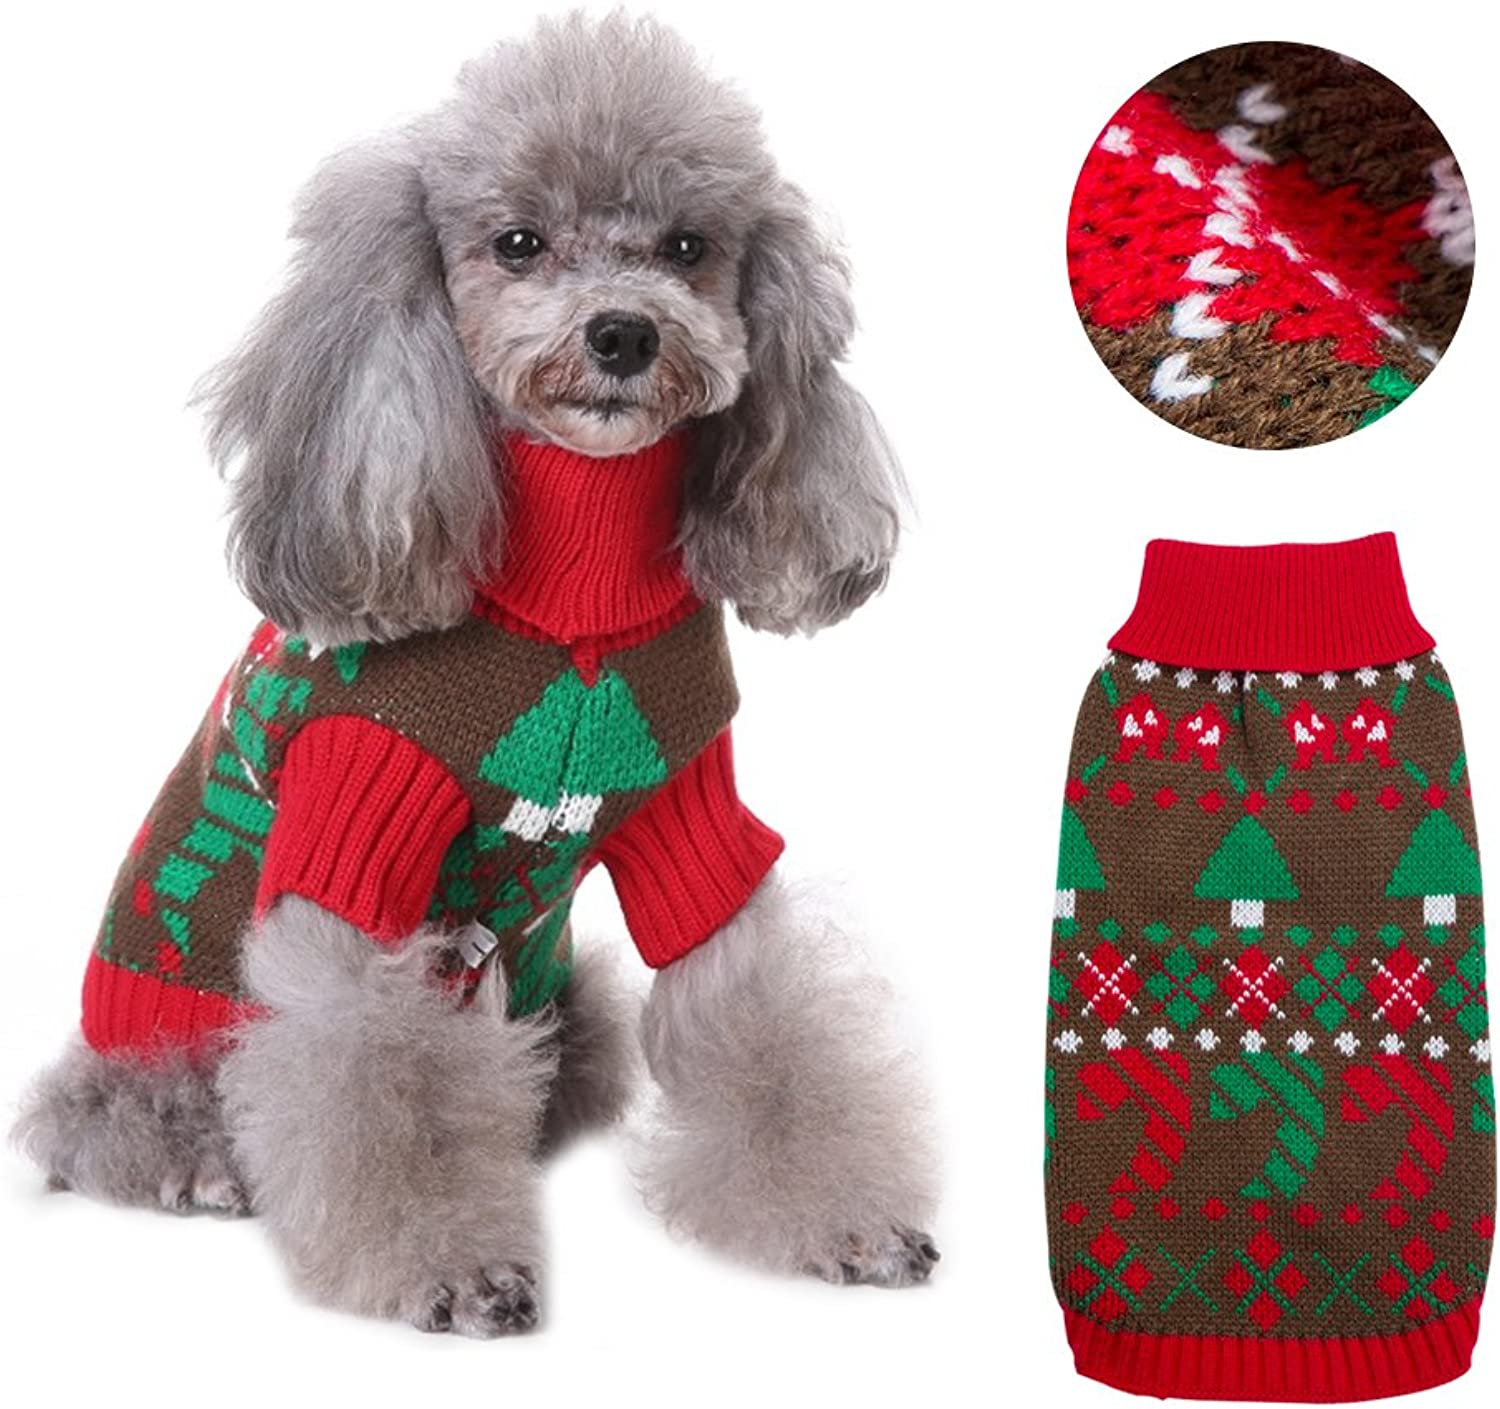 RuoShui Pet Red Sweater Vintage Christmas Holiday Coat Sweater Costumes Pet Dog Cat Apparel Christmas Party Pet Clothes for Cat Dog (M)